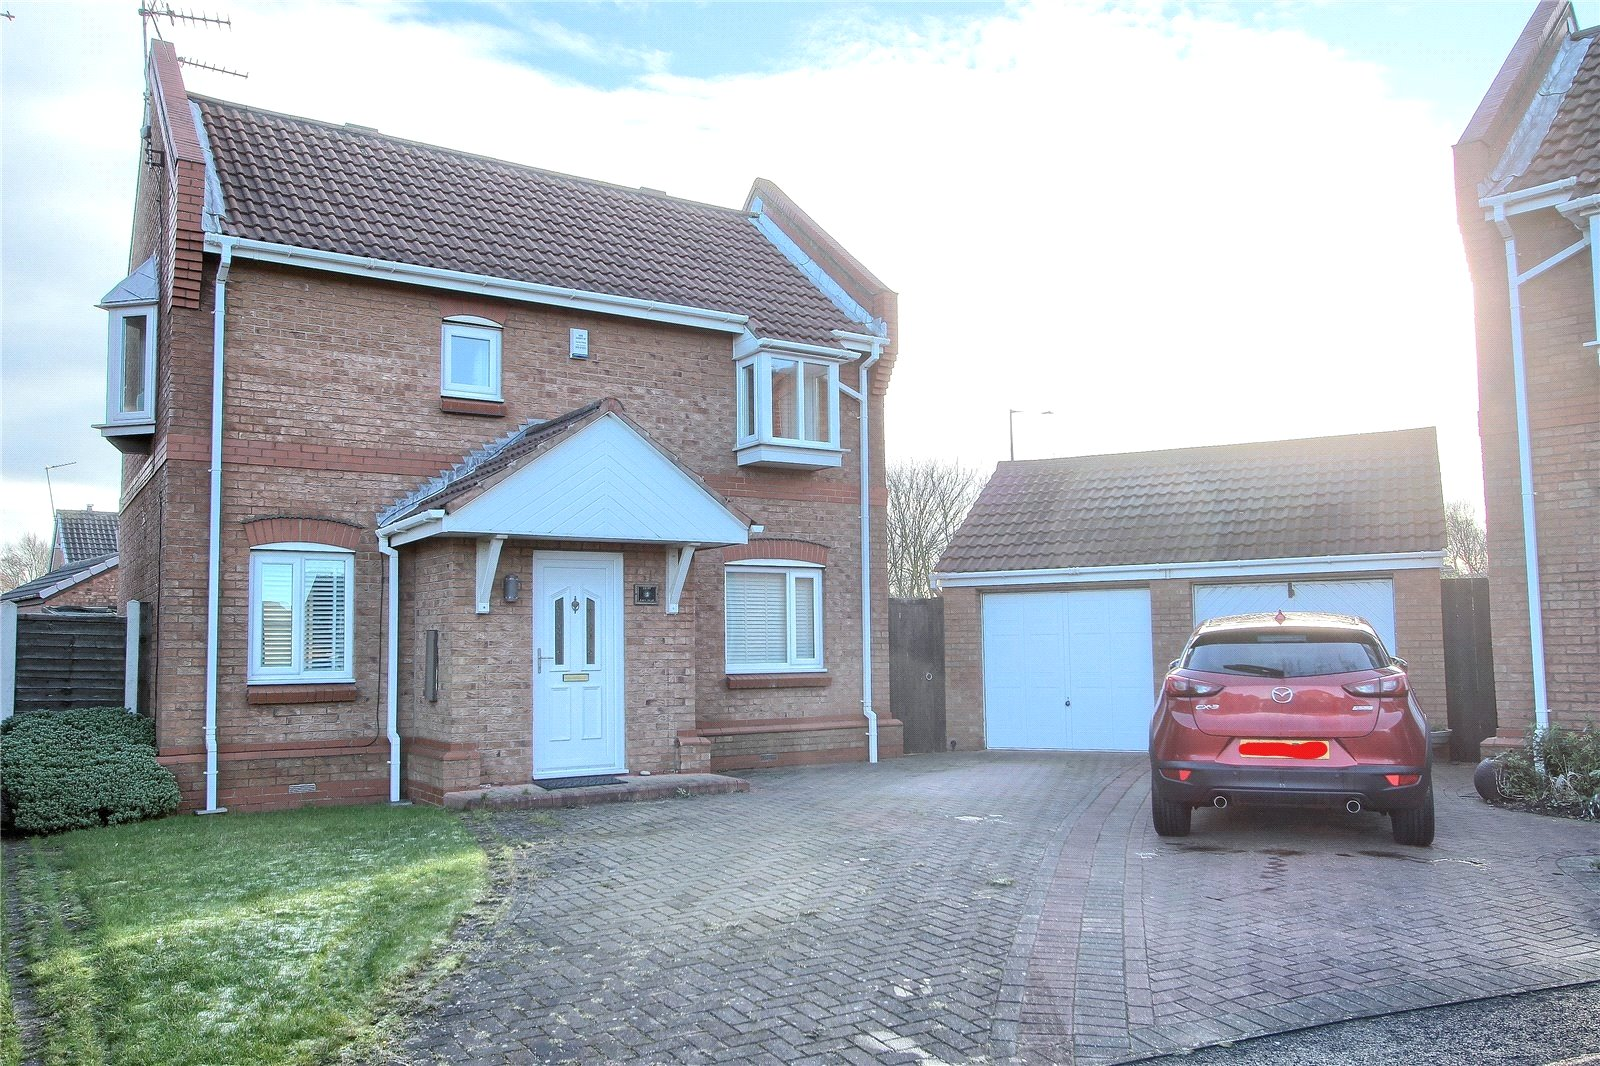 3 bed house for sale in East Scar, Redcar  - Property Image 1